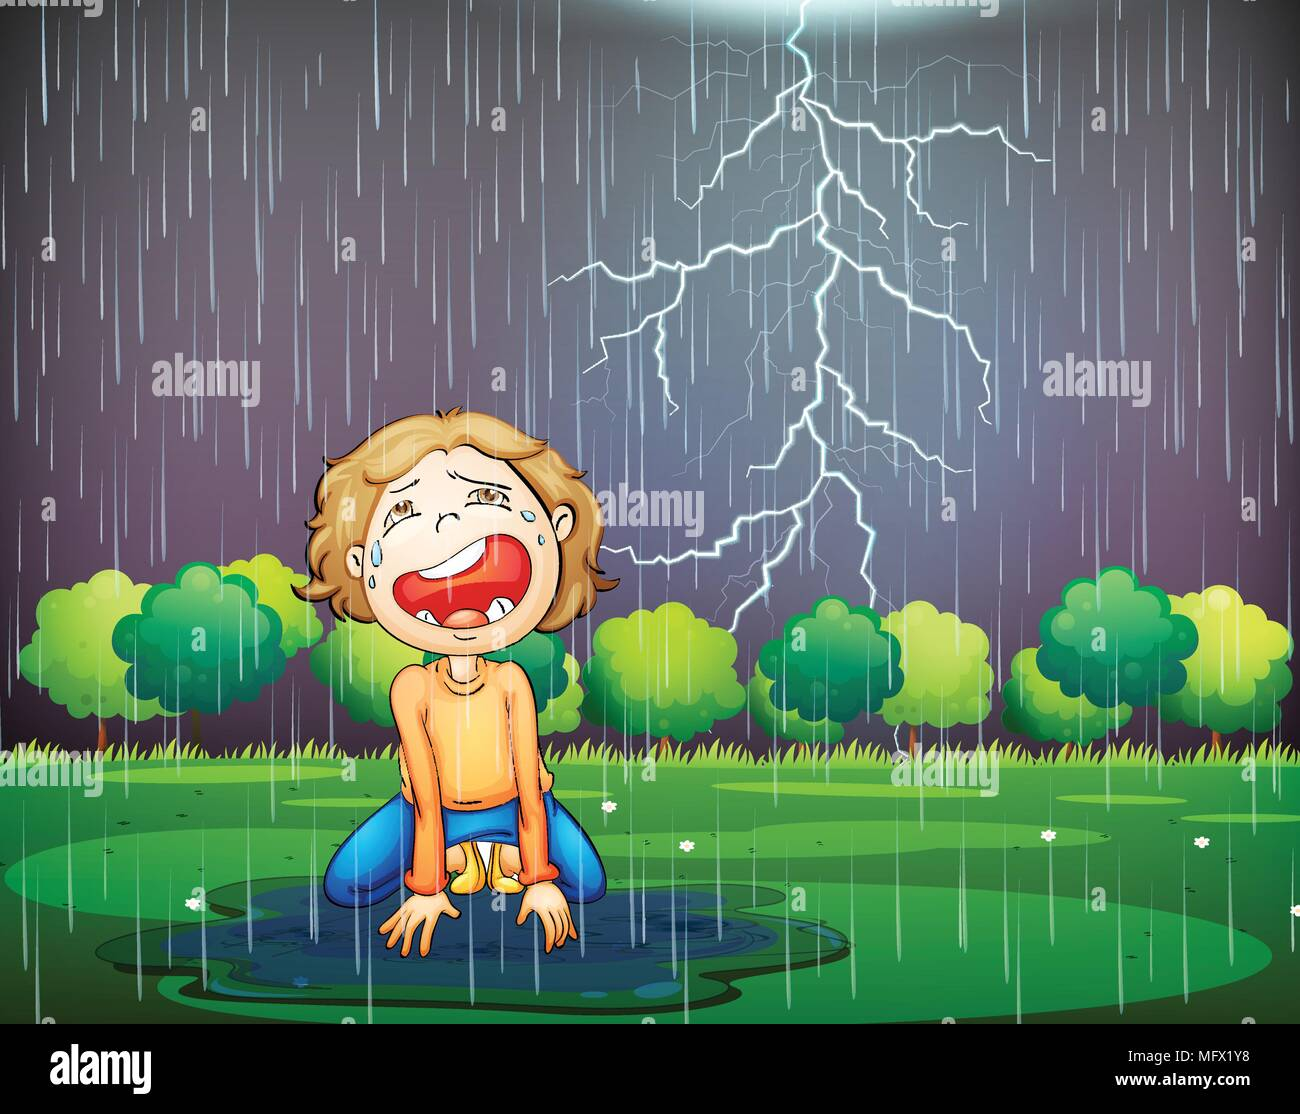 A Crying Kid Lost in the Wood Rain illustration - Stock Vector